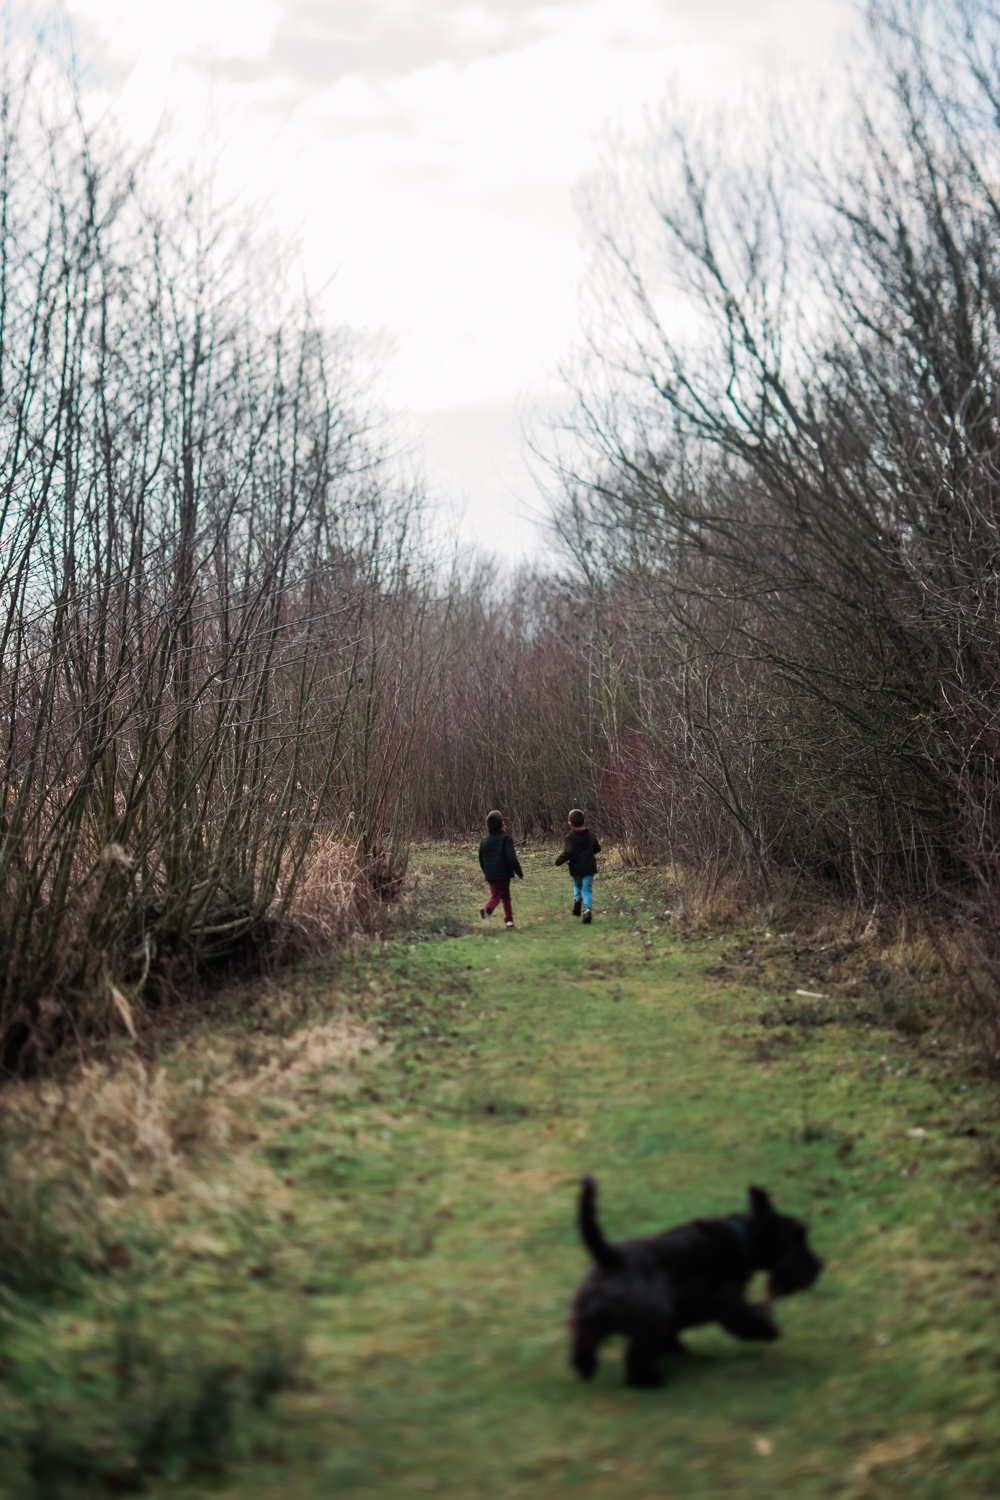 Two boys running down a grass path and a black dog in the foregr